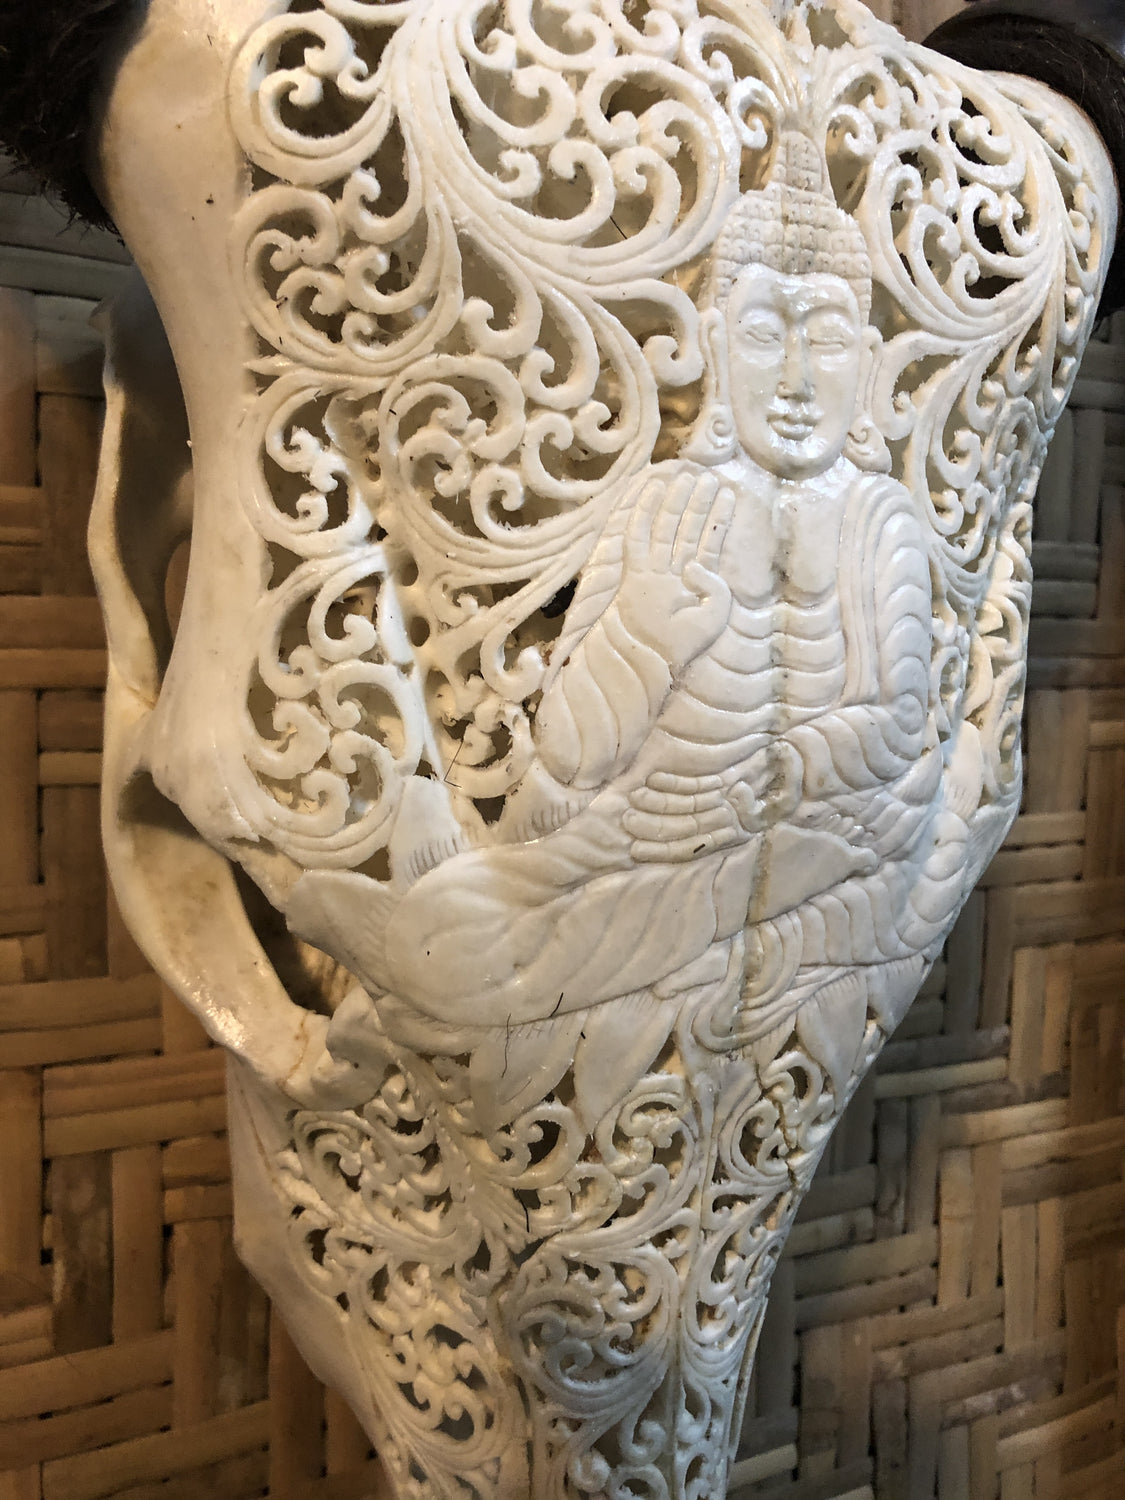 Intricately Carved Buffalo Skulls with Buddha